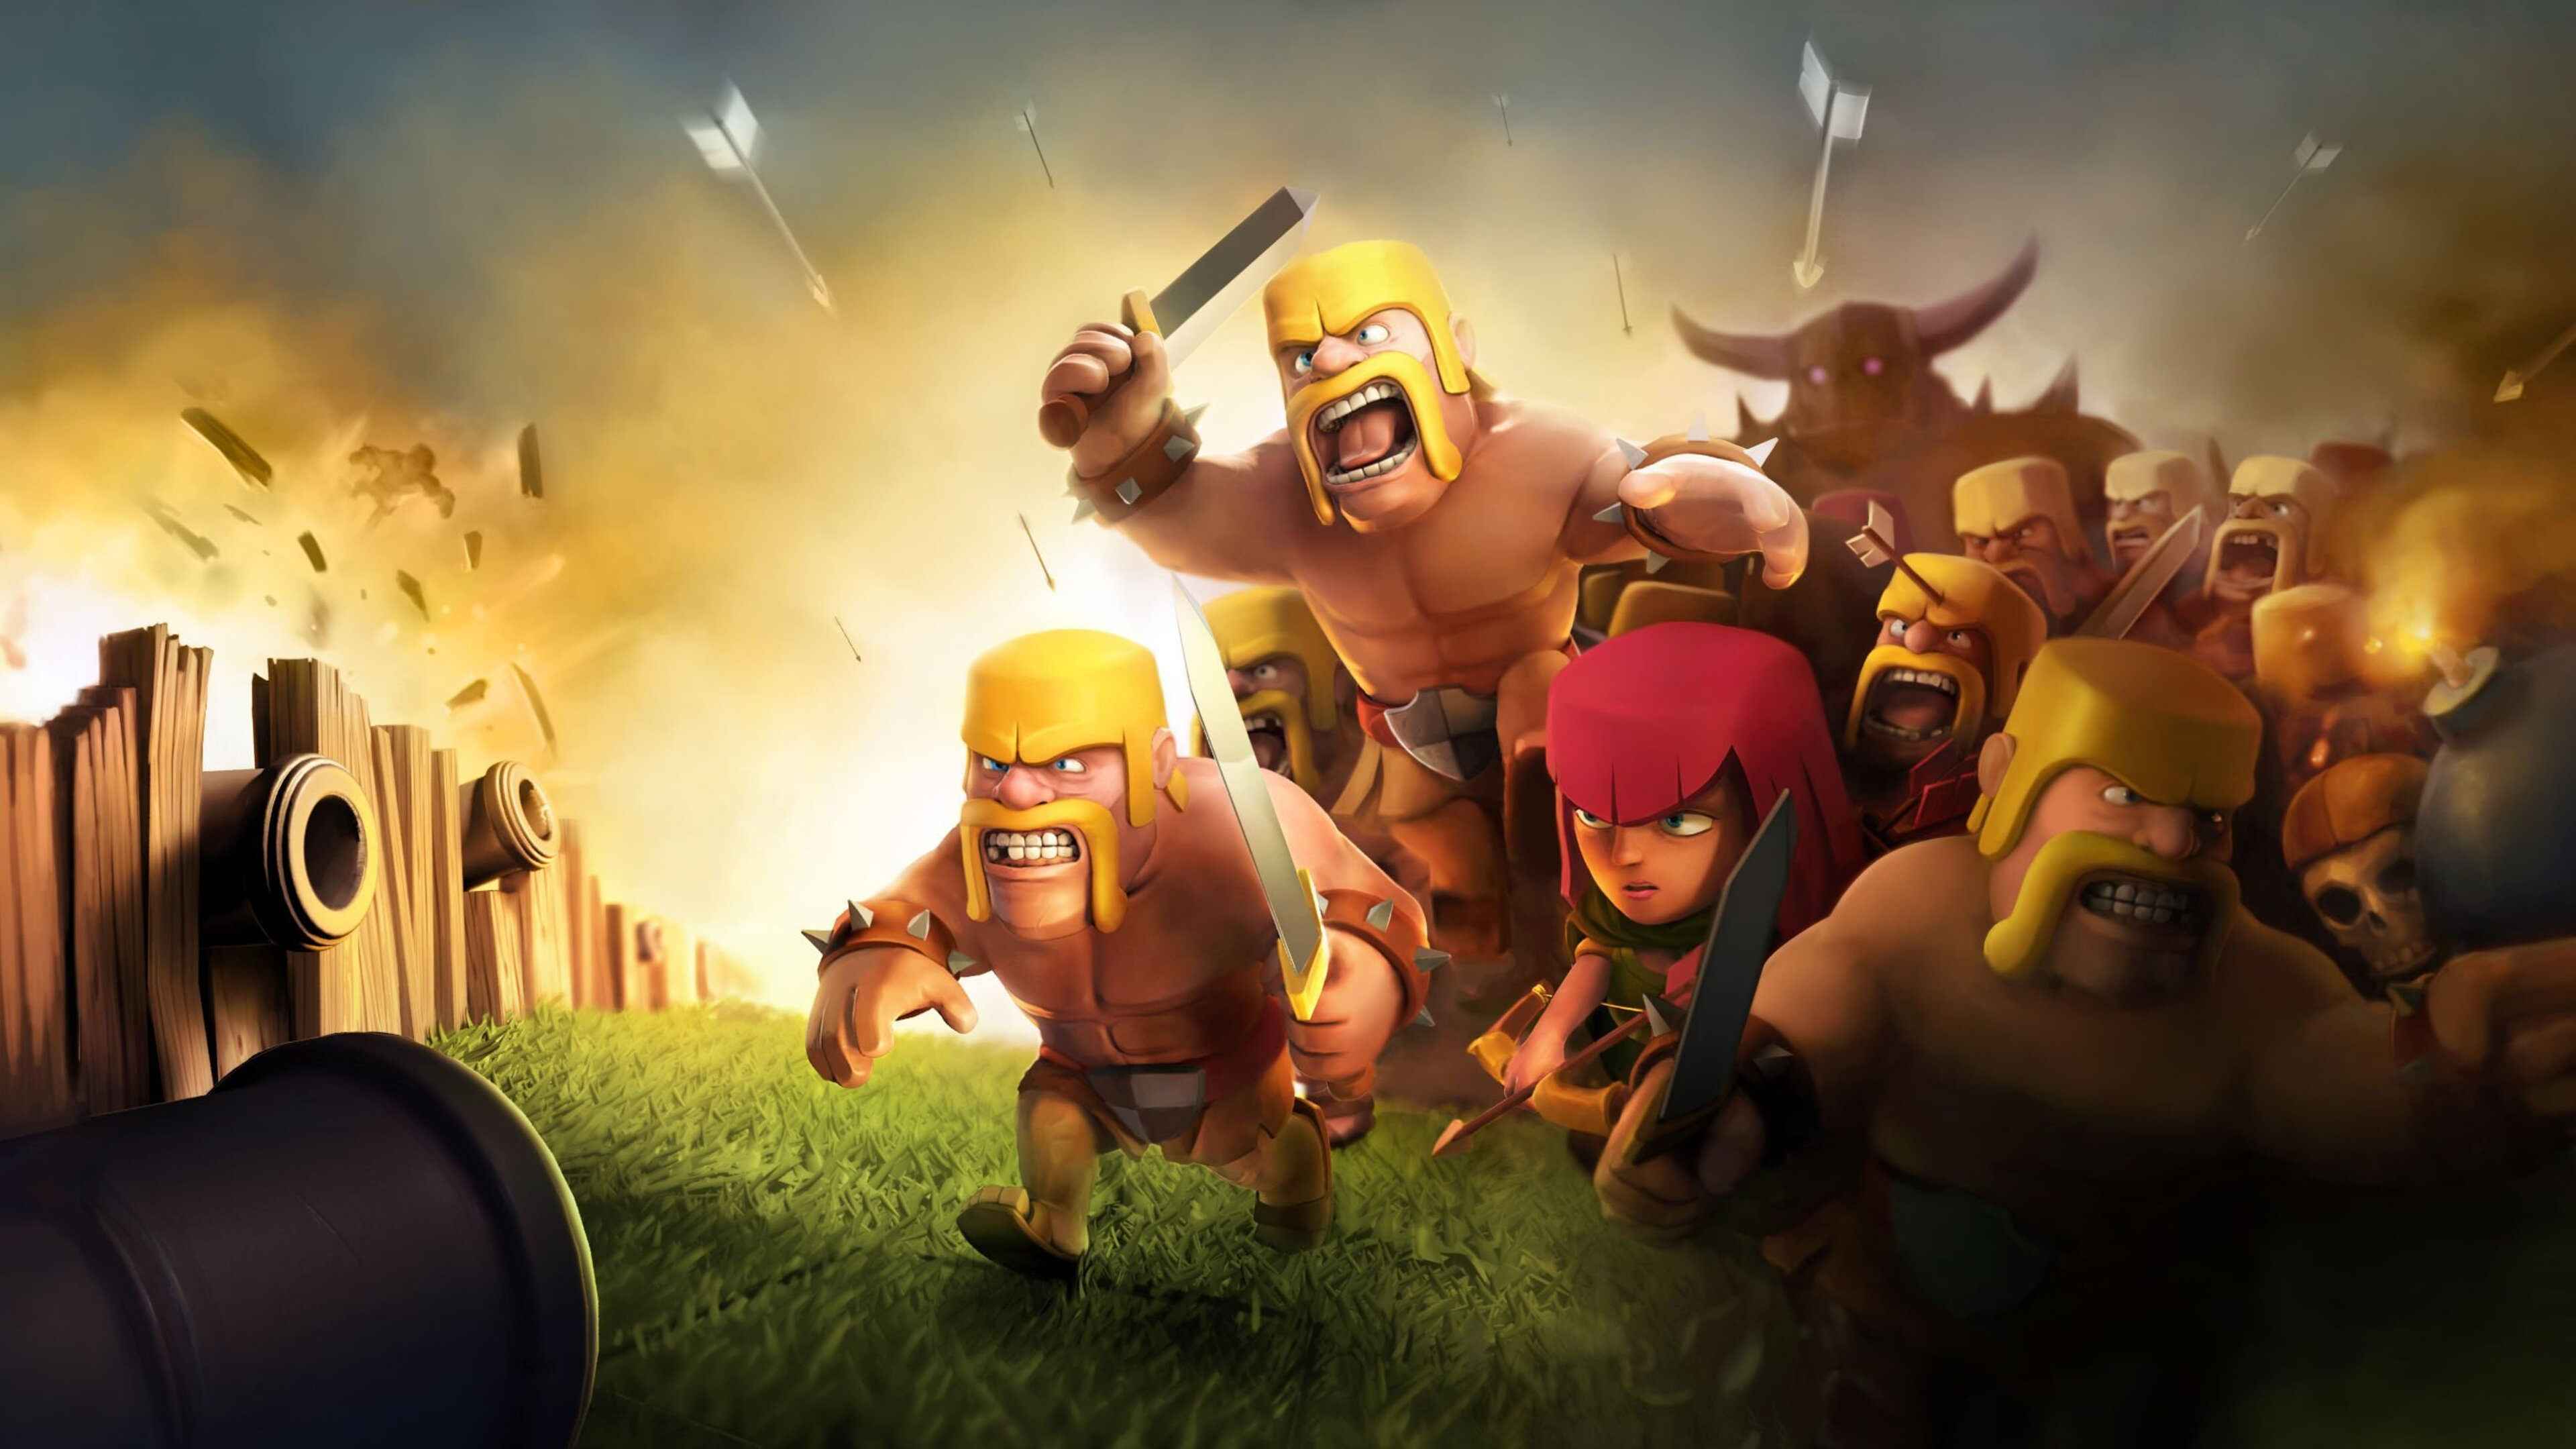 Cute Wallpapers For Girls  3840x2160 Clash Of Clans Hd 4k Hd 4k Wallpapers Images